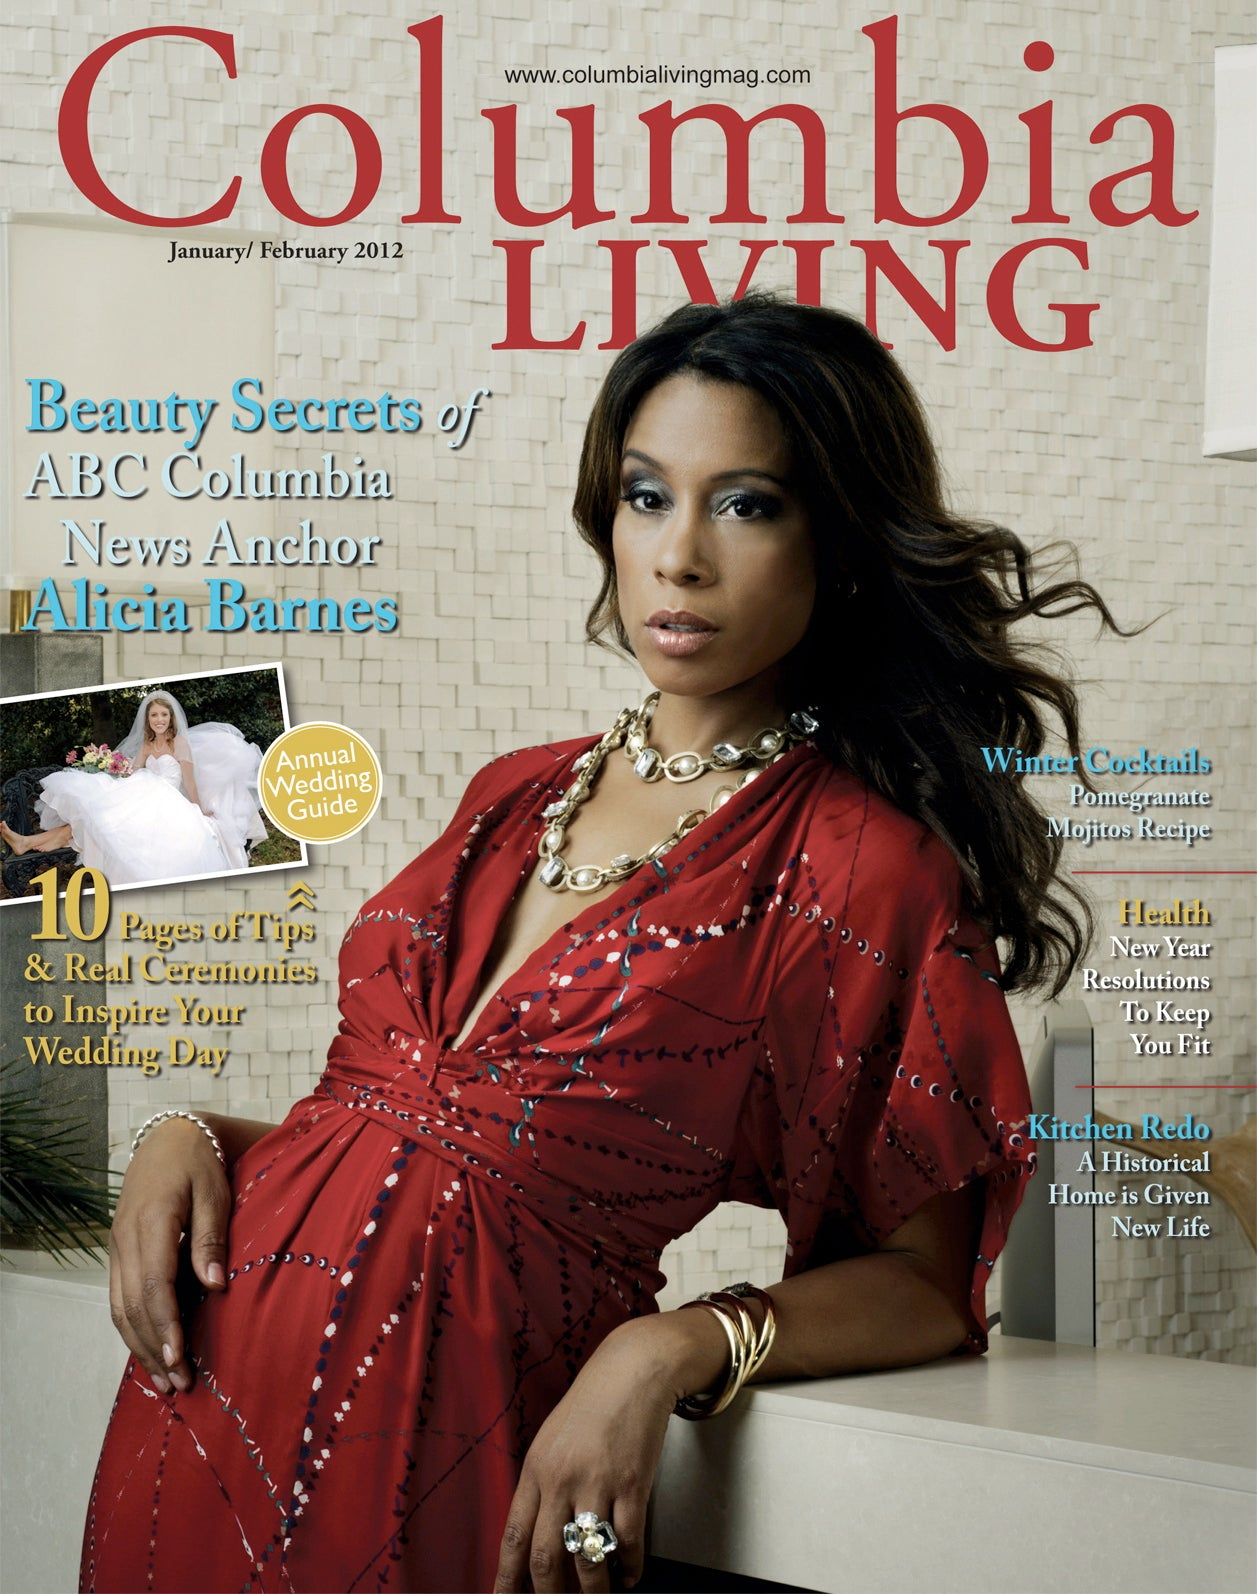 snapshot of Beauty Secrets of ABC Columbia News Anchor Alicia Barnes favorites featured in the Jan/Feb 2012 issue of Columbia Living Magazine